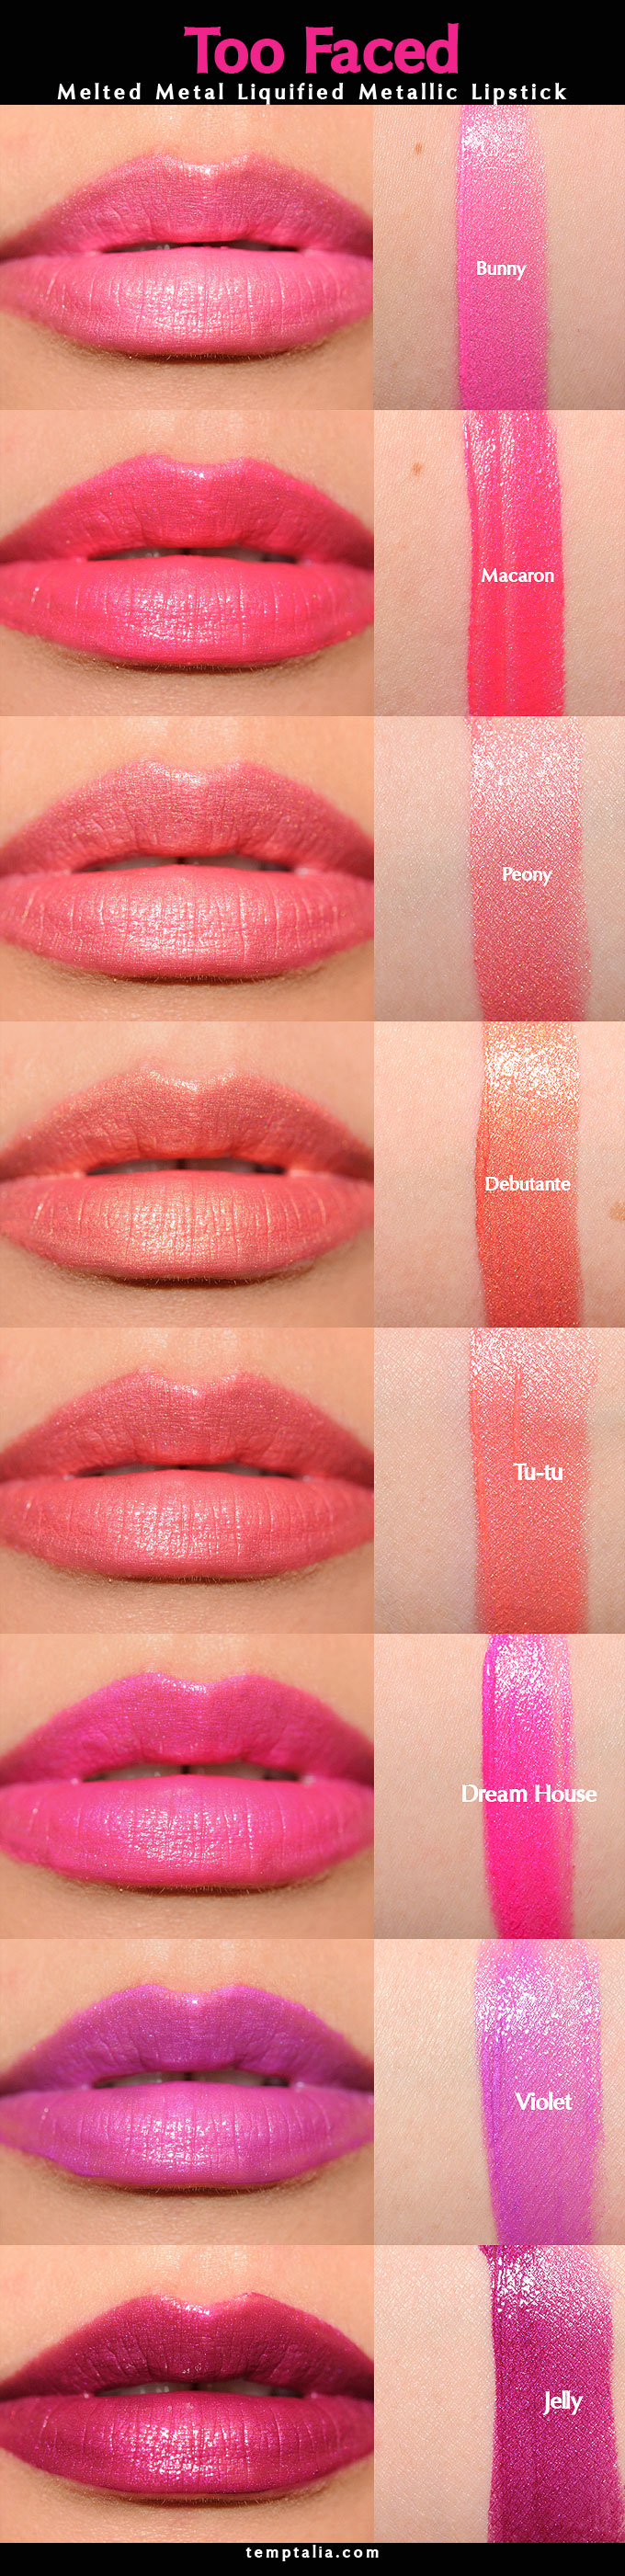 Too-Faced-Melted-Metal-Liquified-Metallic-Lipstick